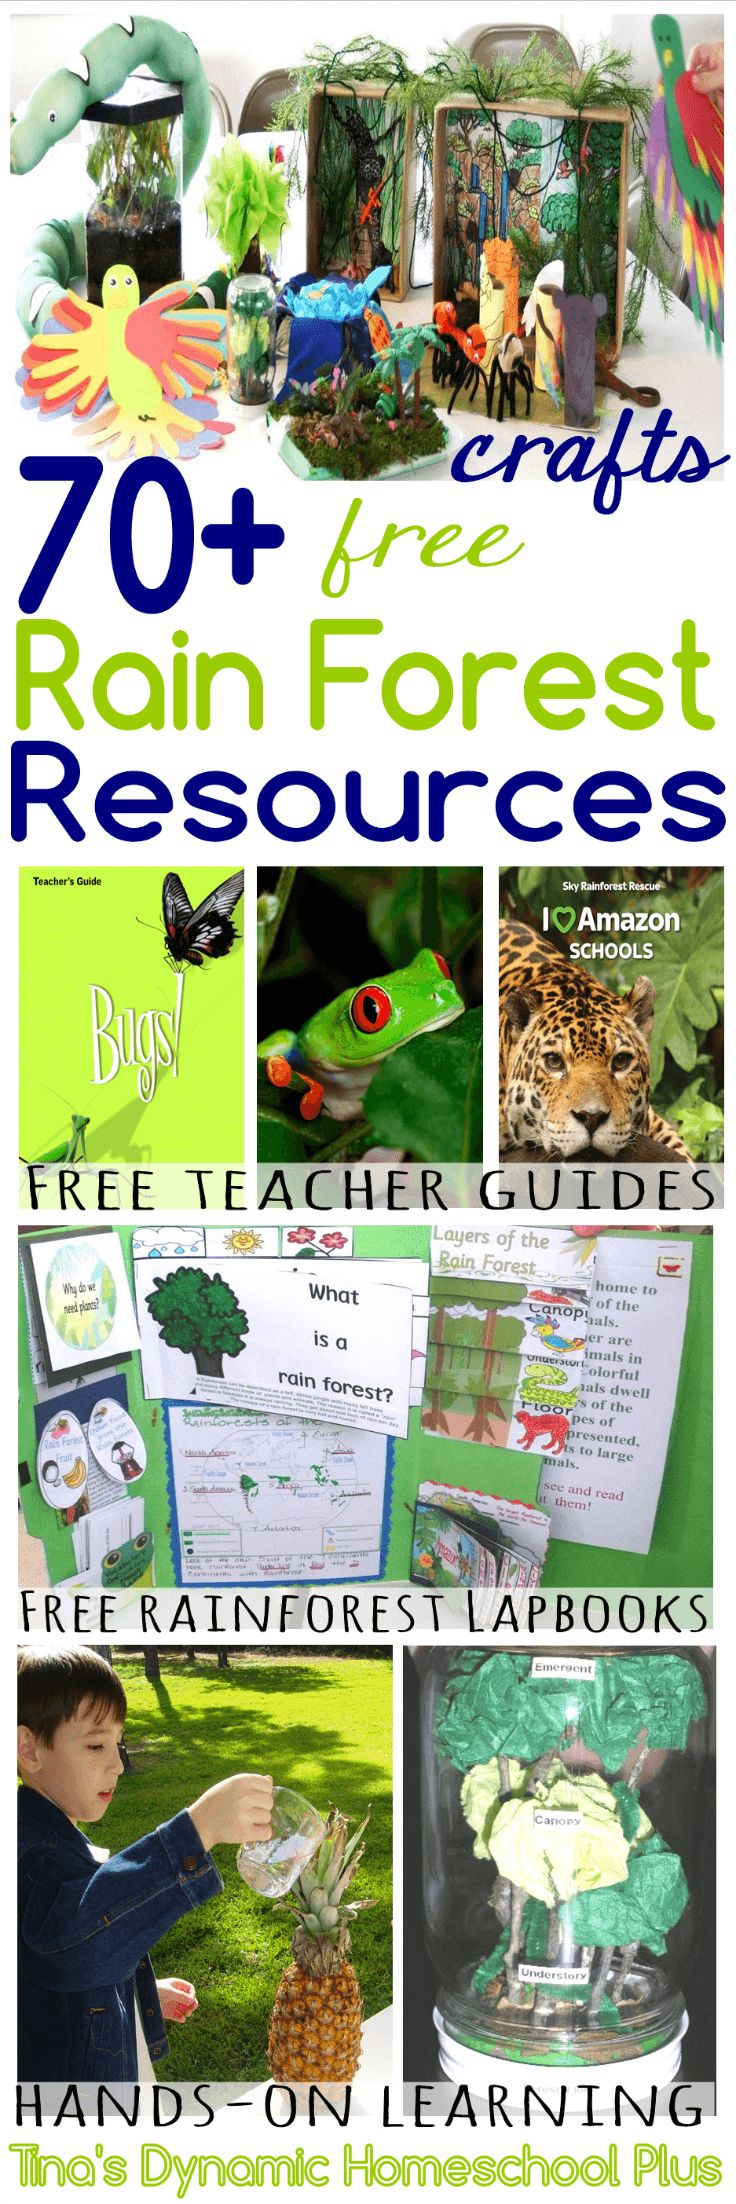 70+ Free Rain Forest Resources  Teacher Guides, Crafts, Lapbooks |Tina's Dynamic Homeschool Plus